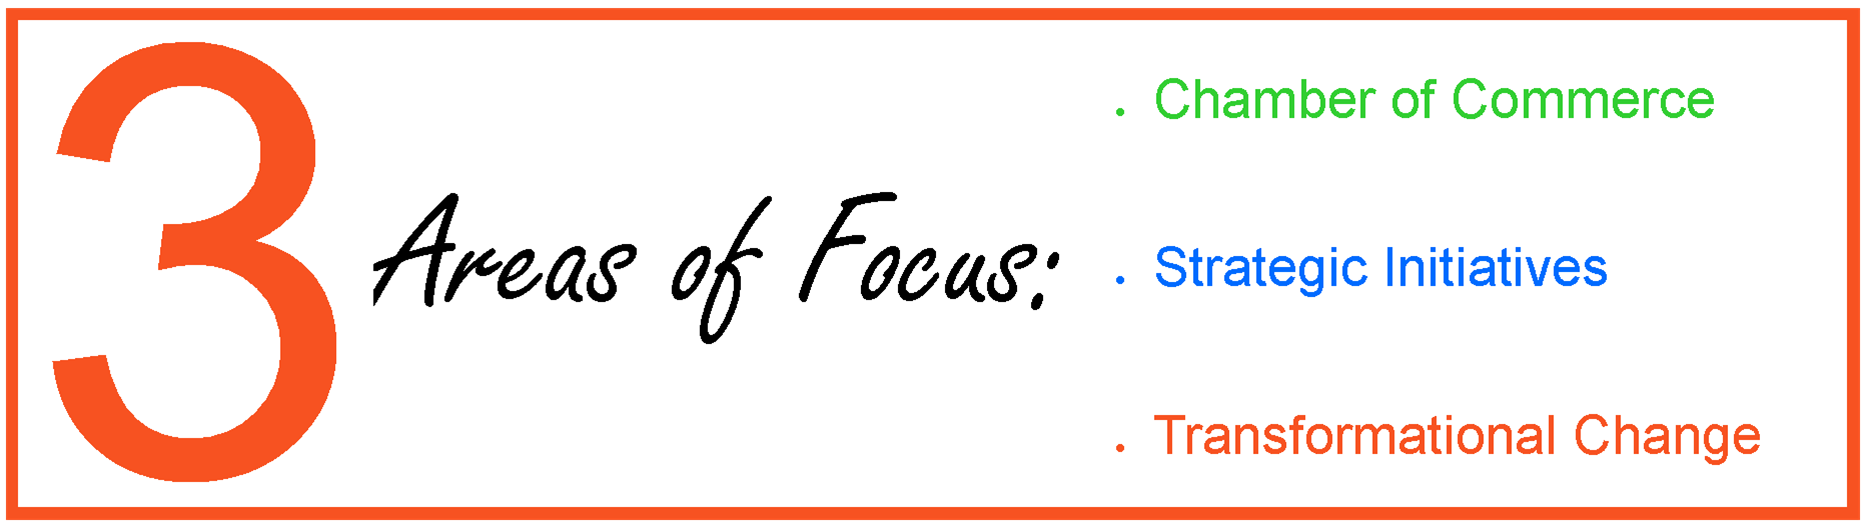 3-Areas-of-Focus.png